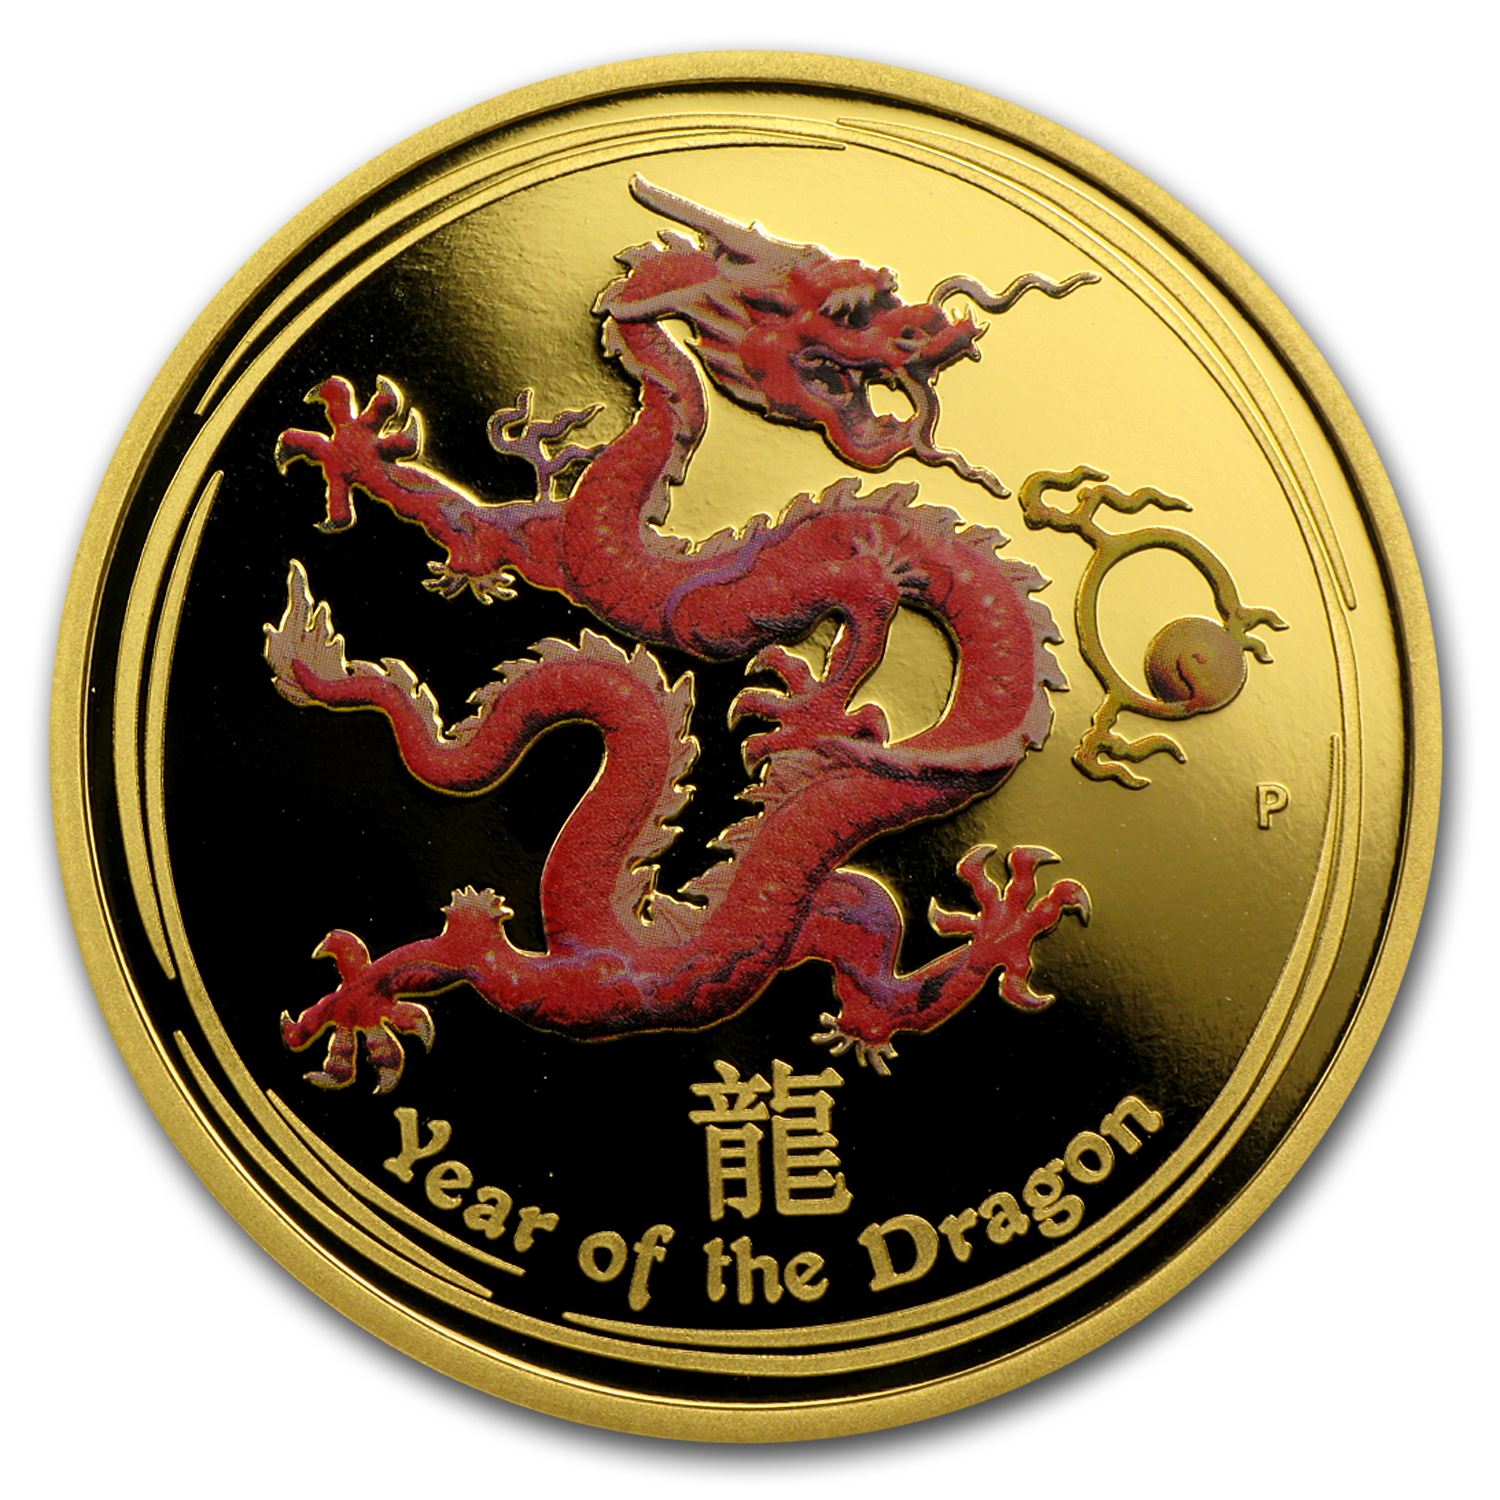 2012 1 oz Colored Proof Gold Lunar Year of the Dragon (Series II)